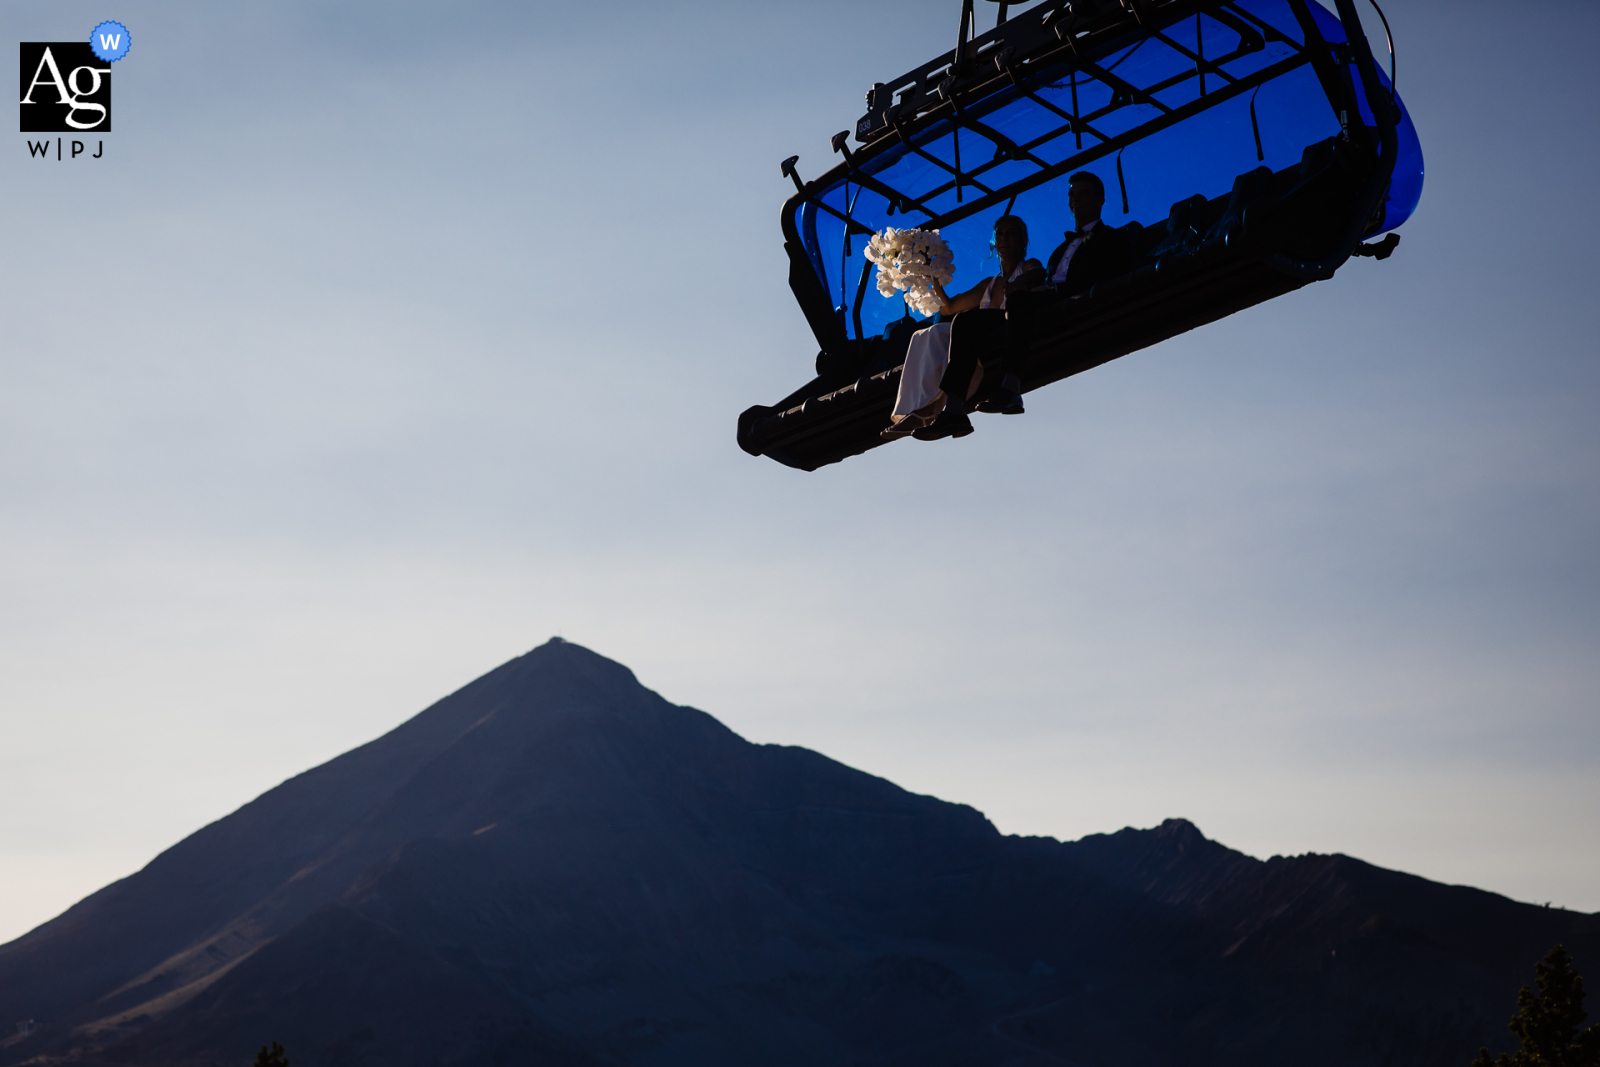 Montana big sky artistic wedding photo showing a bouquet on chairlift at the ski resort